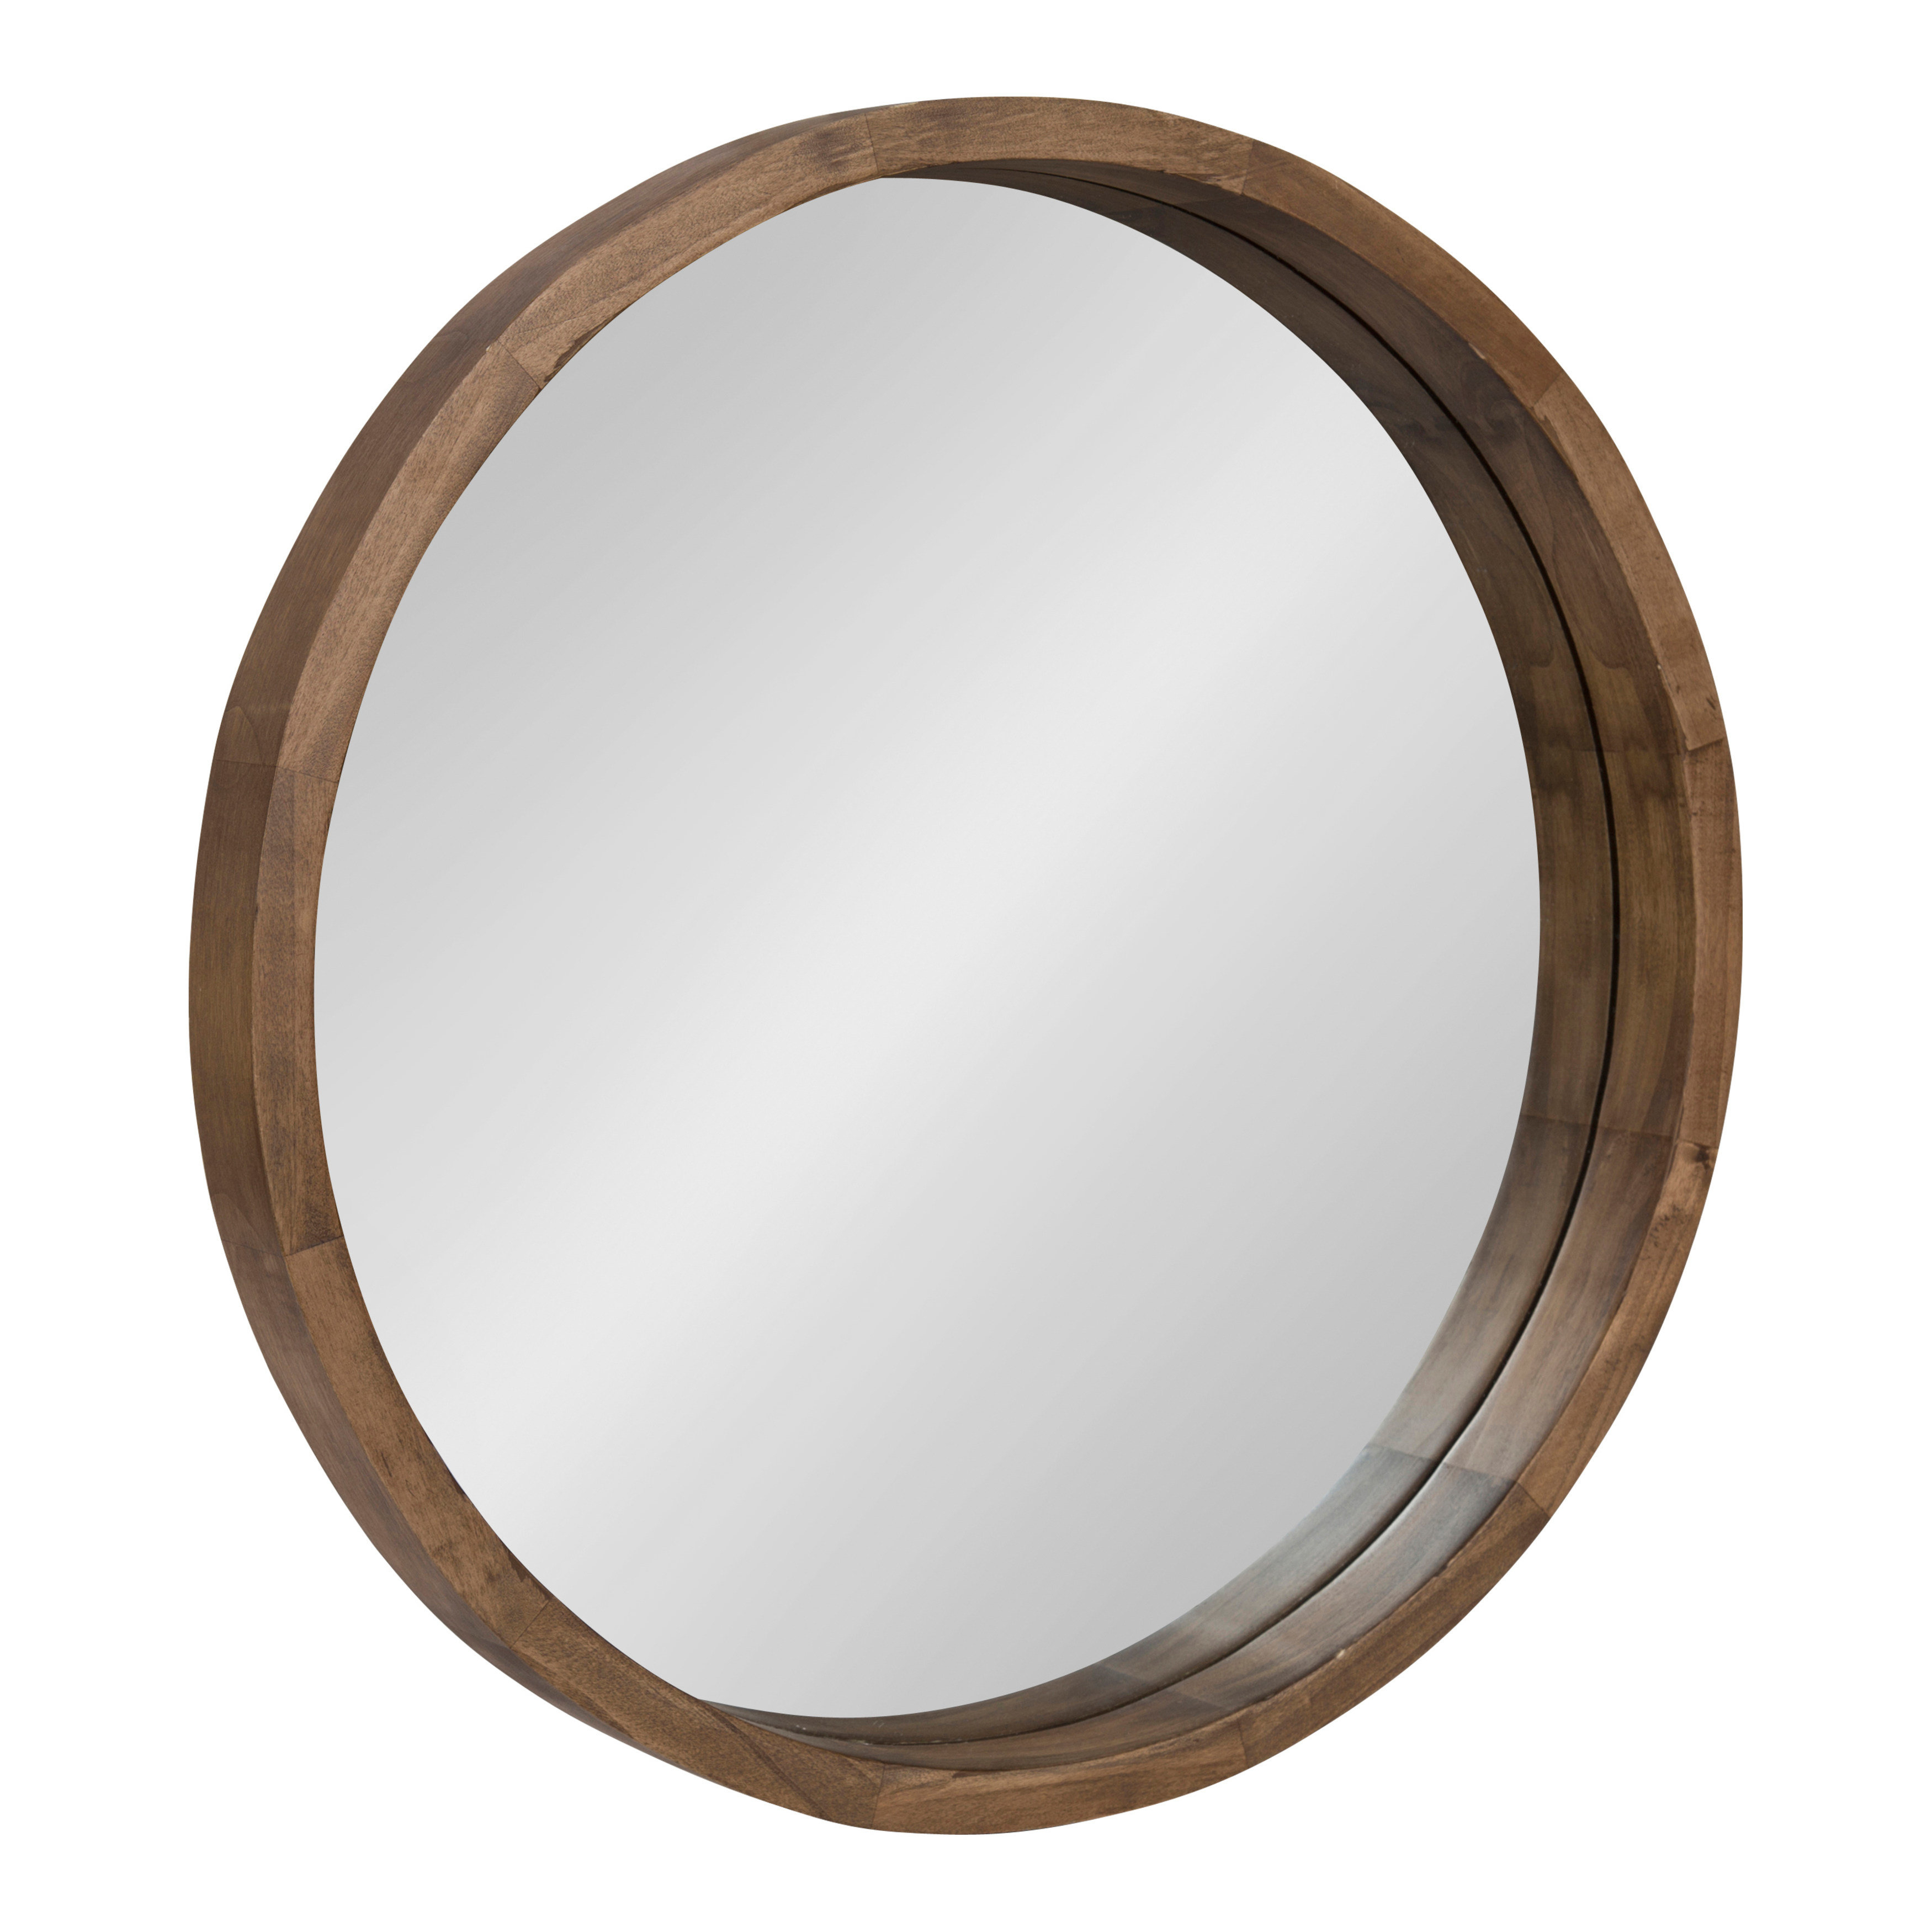 Loftis Decorative Wall Mirror Intended For Loftis Modern & Contemporary Accent Wall Mirrors (View 5 of 20)